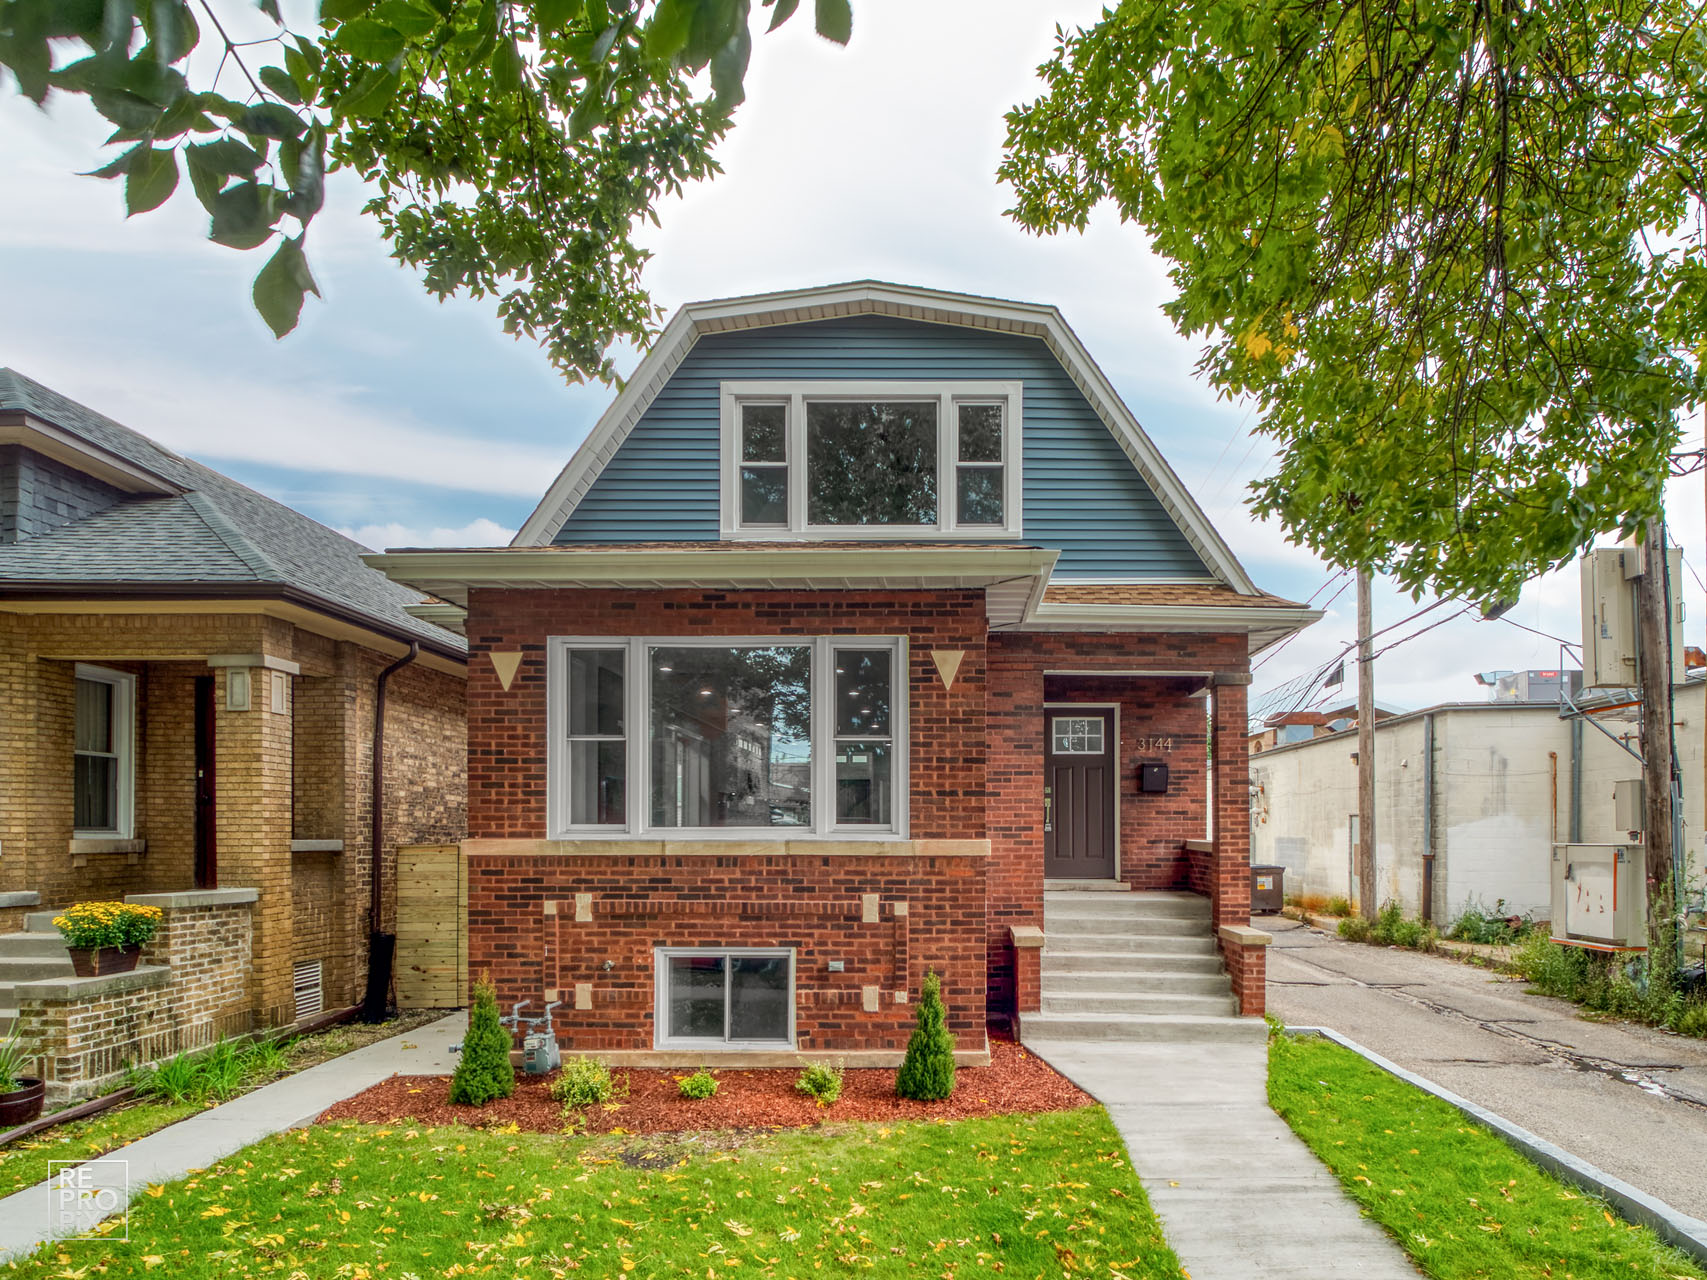 3144 N Long Ave, Chicago